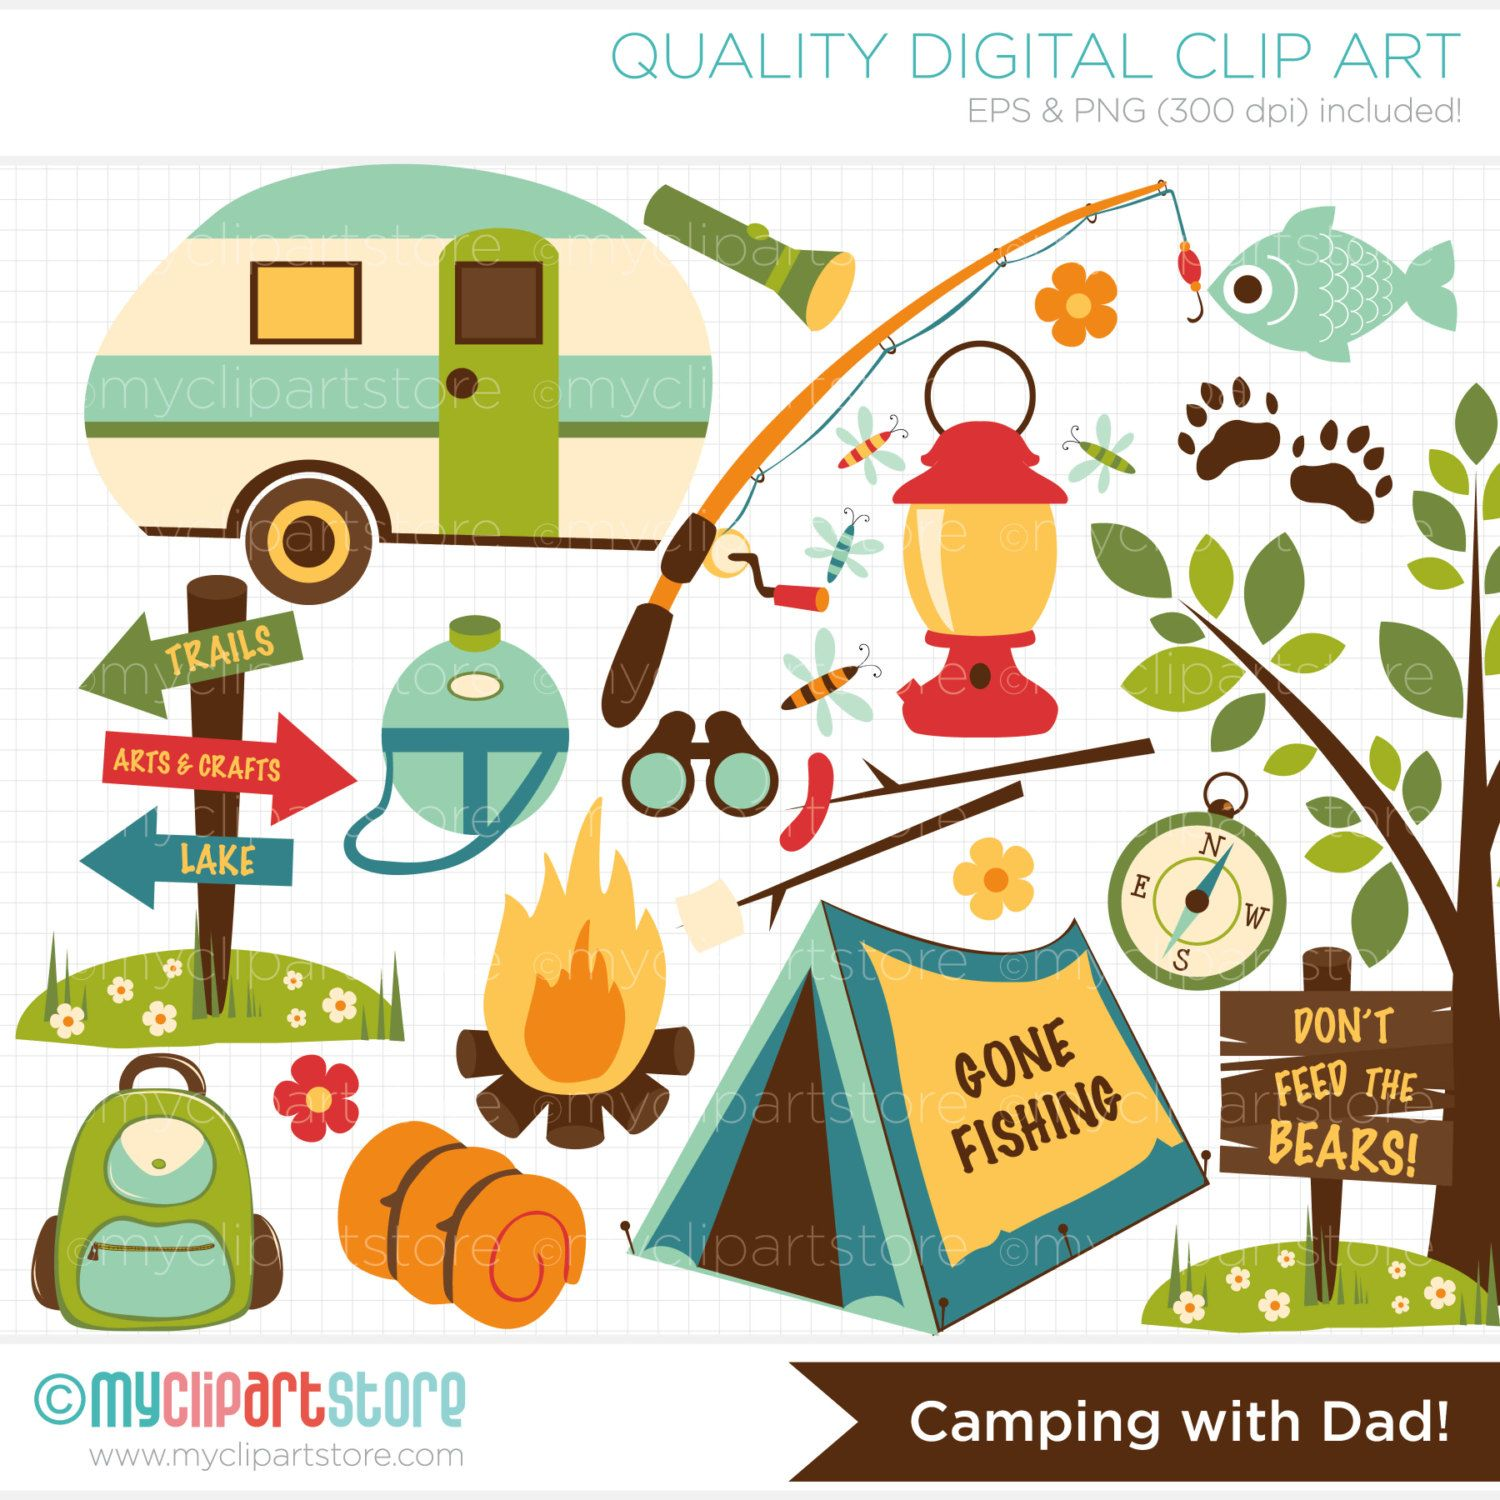 Camping clipart camping theme. With dad fishing father